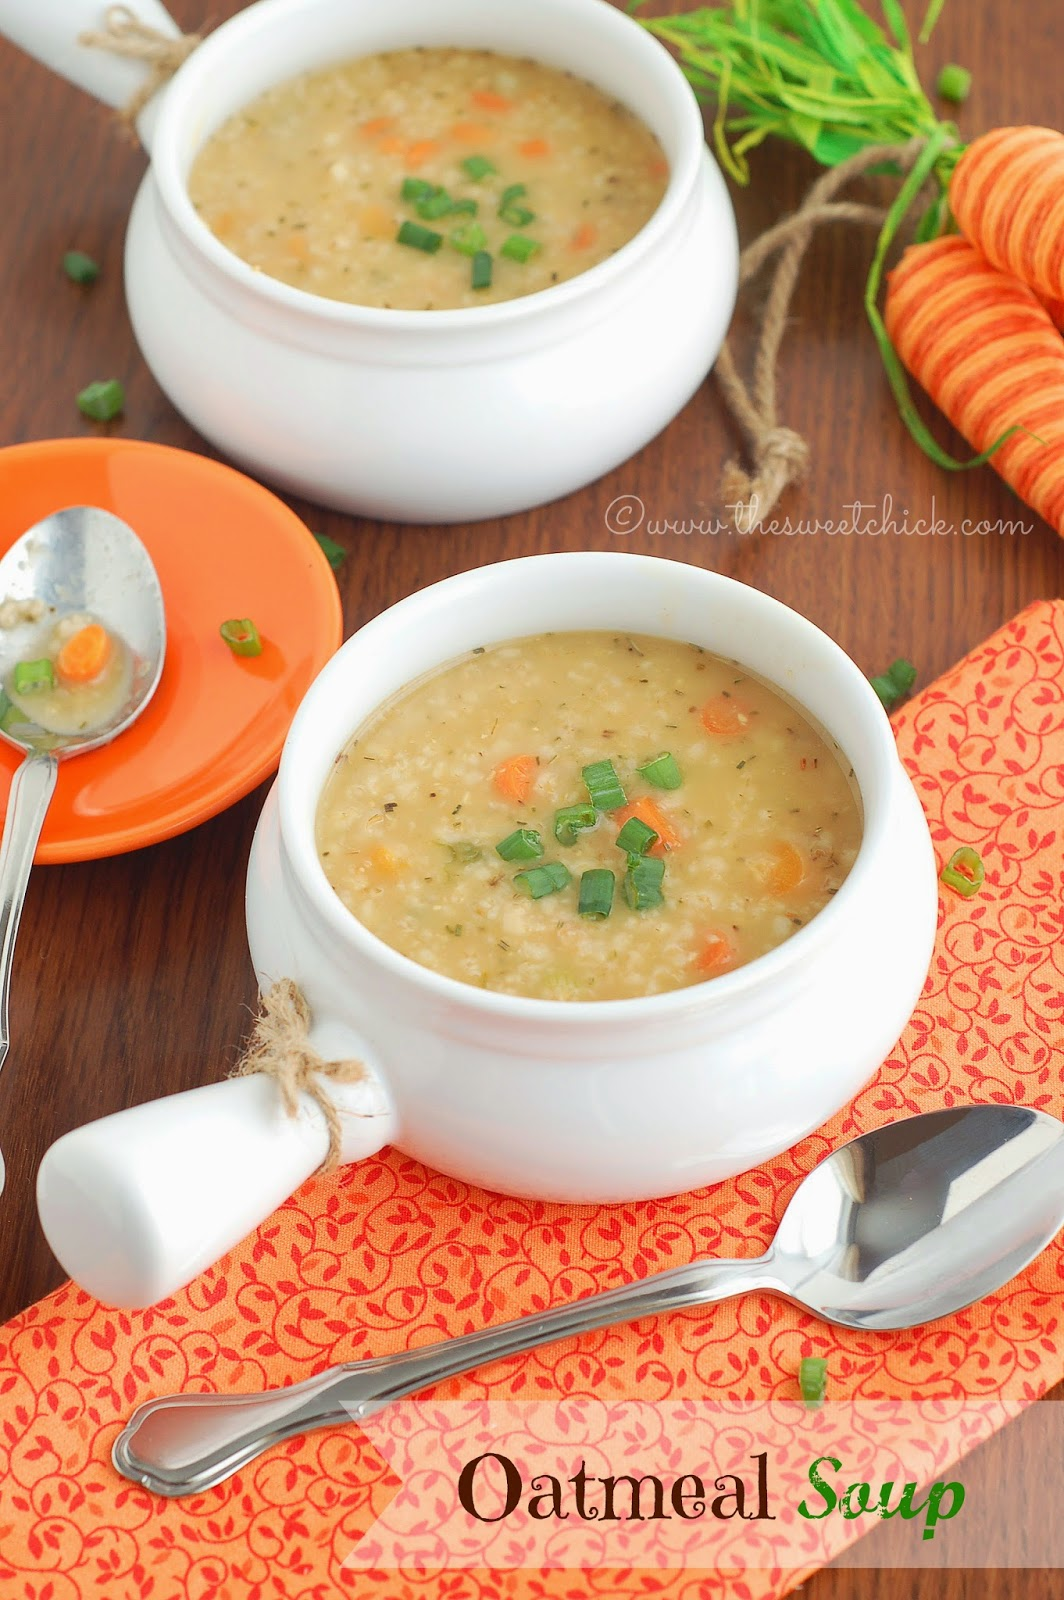 Oatmeal Soup by The Sweet Chick